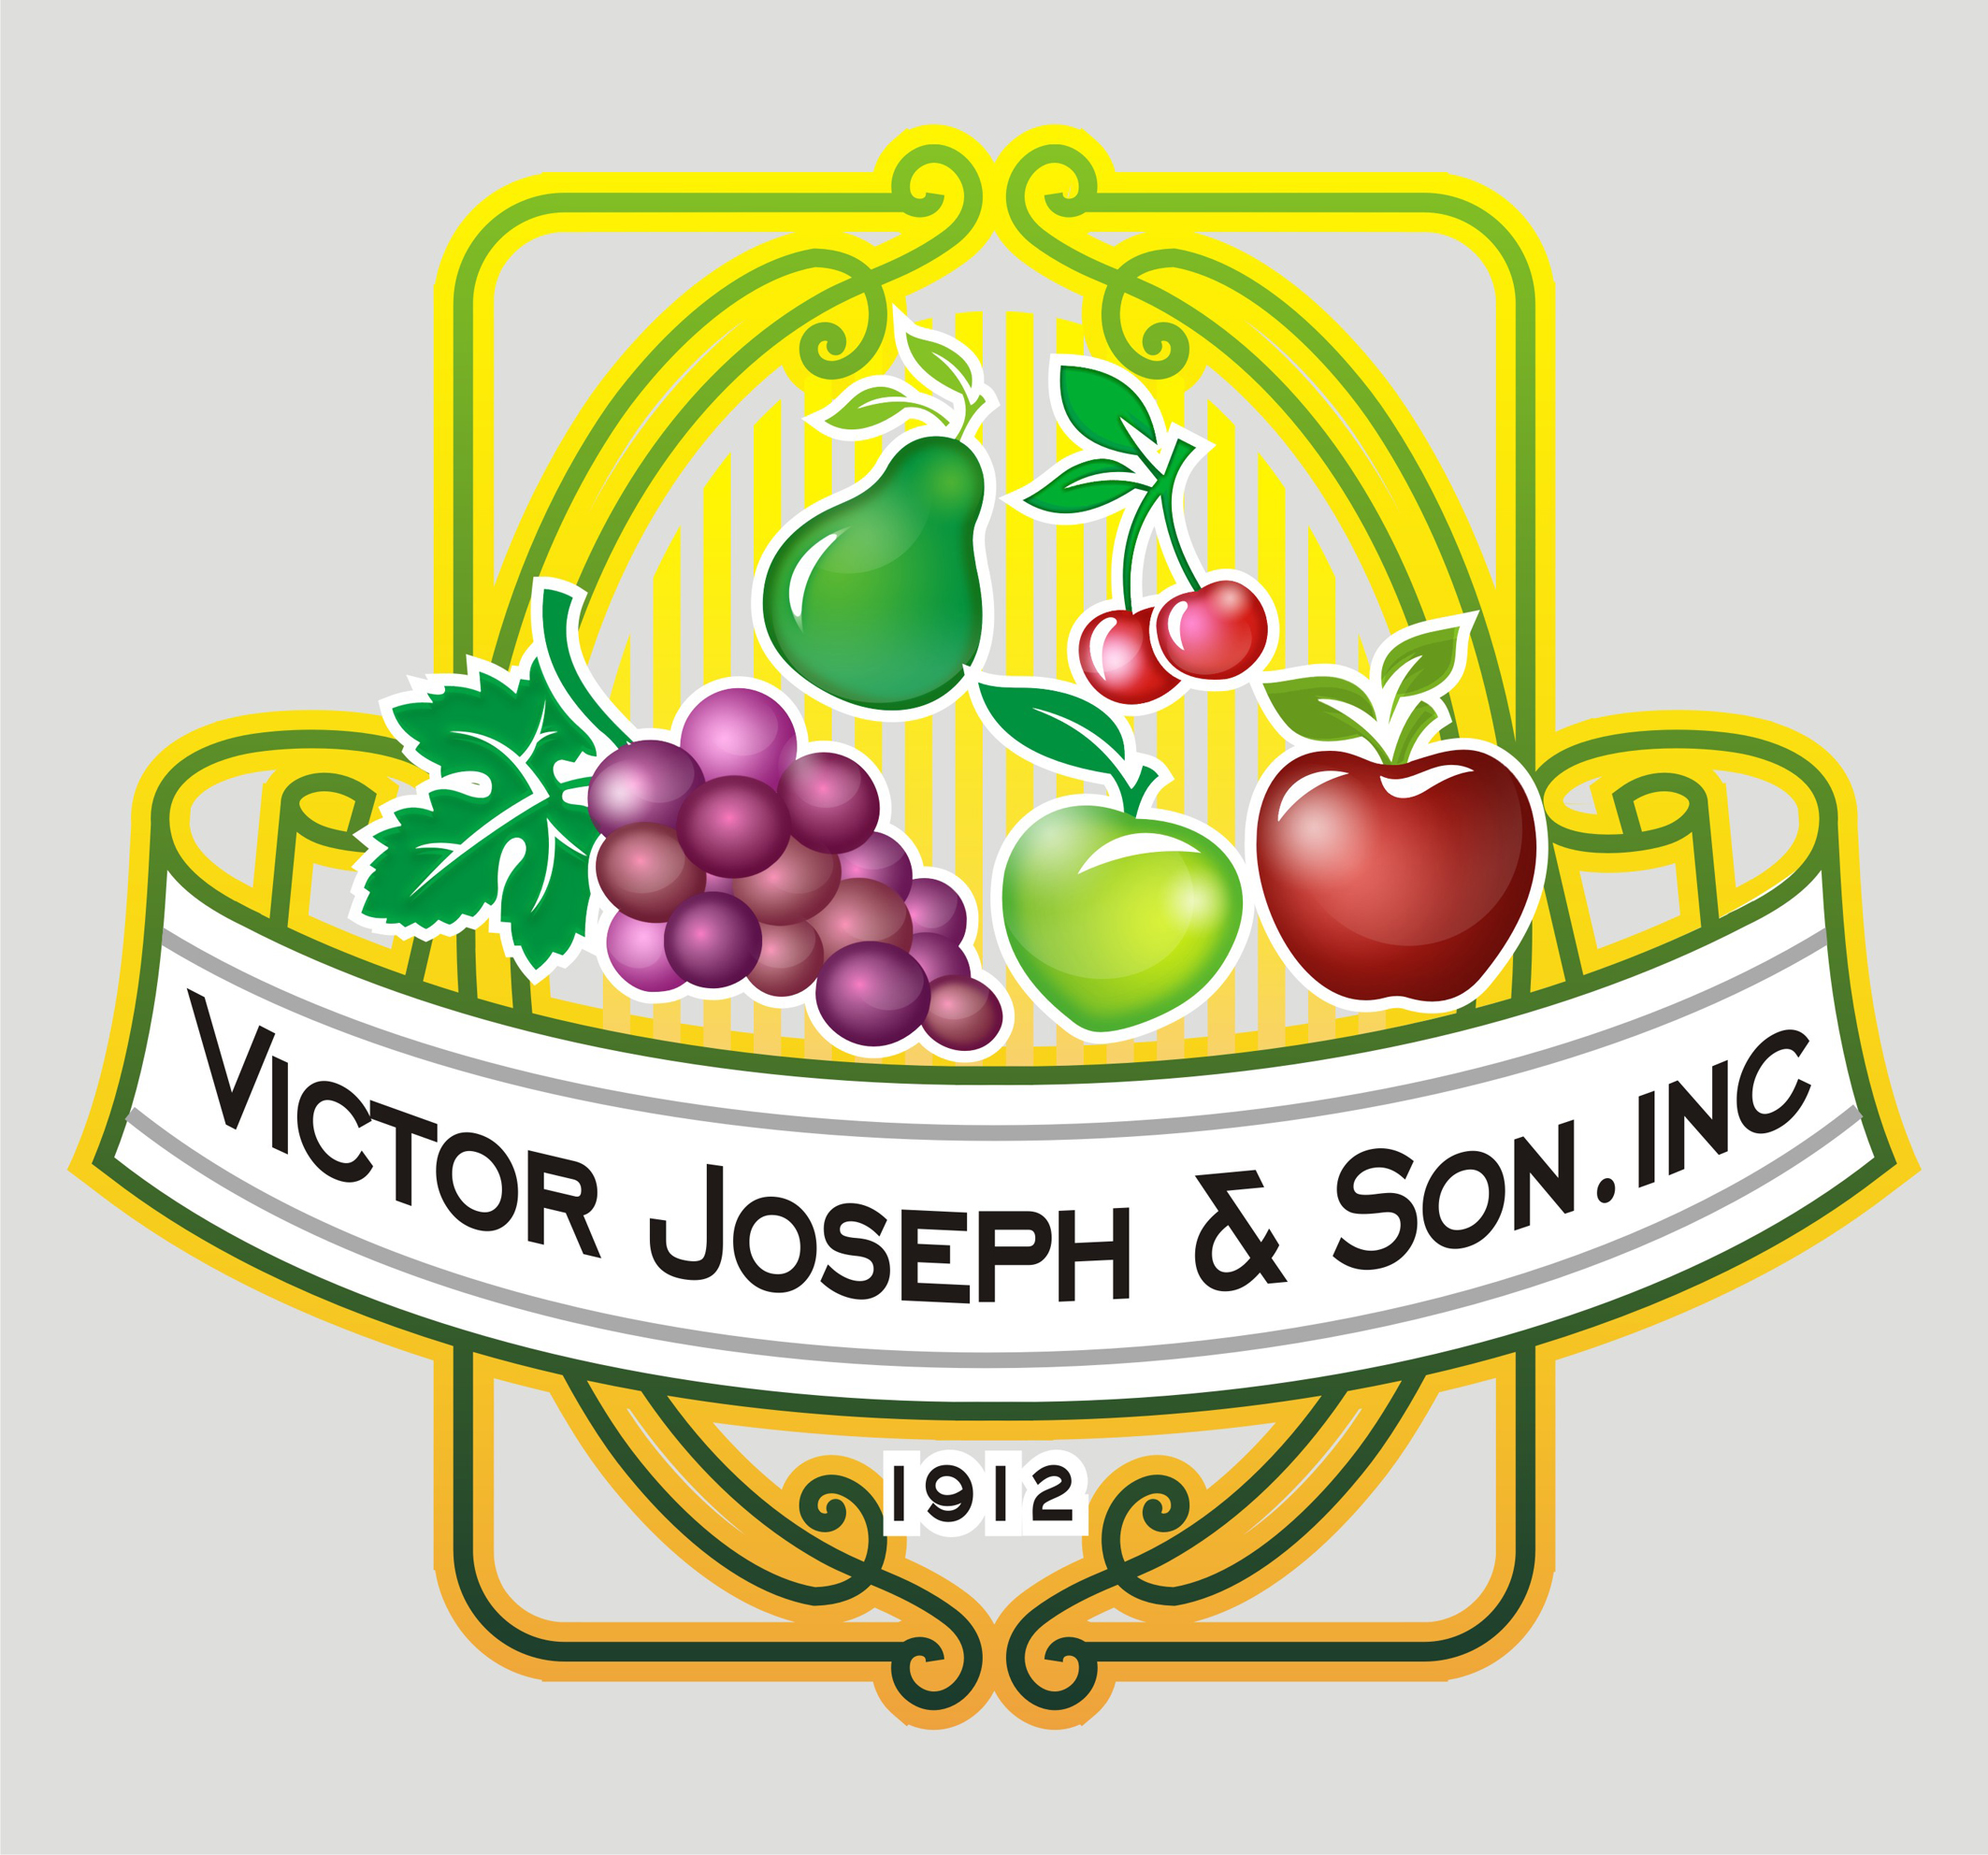 Logo Design by Private User - Entry No. 205 in the Logo Design Contest Imaginative Logo Design for Victor Joseph & Son, Inc..